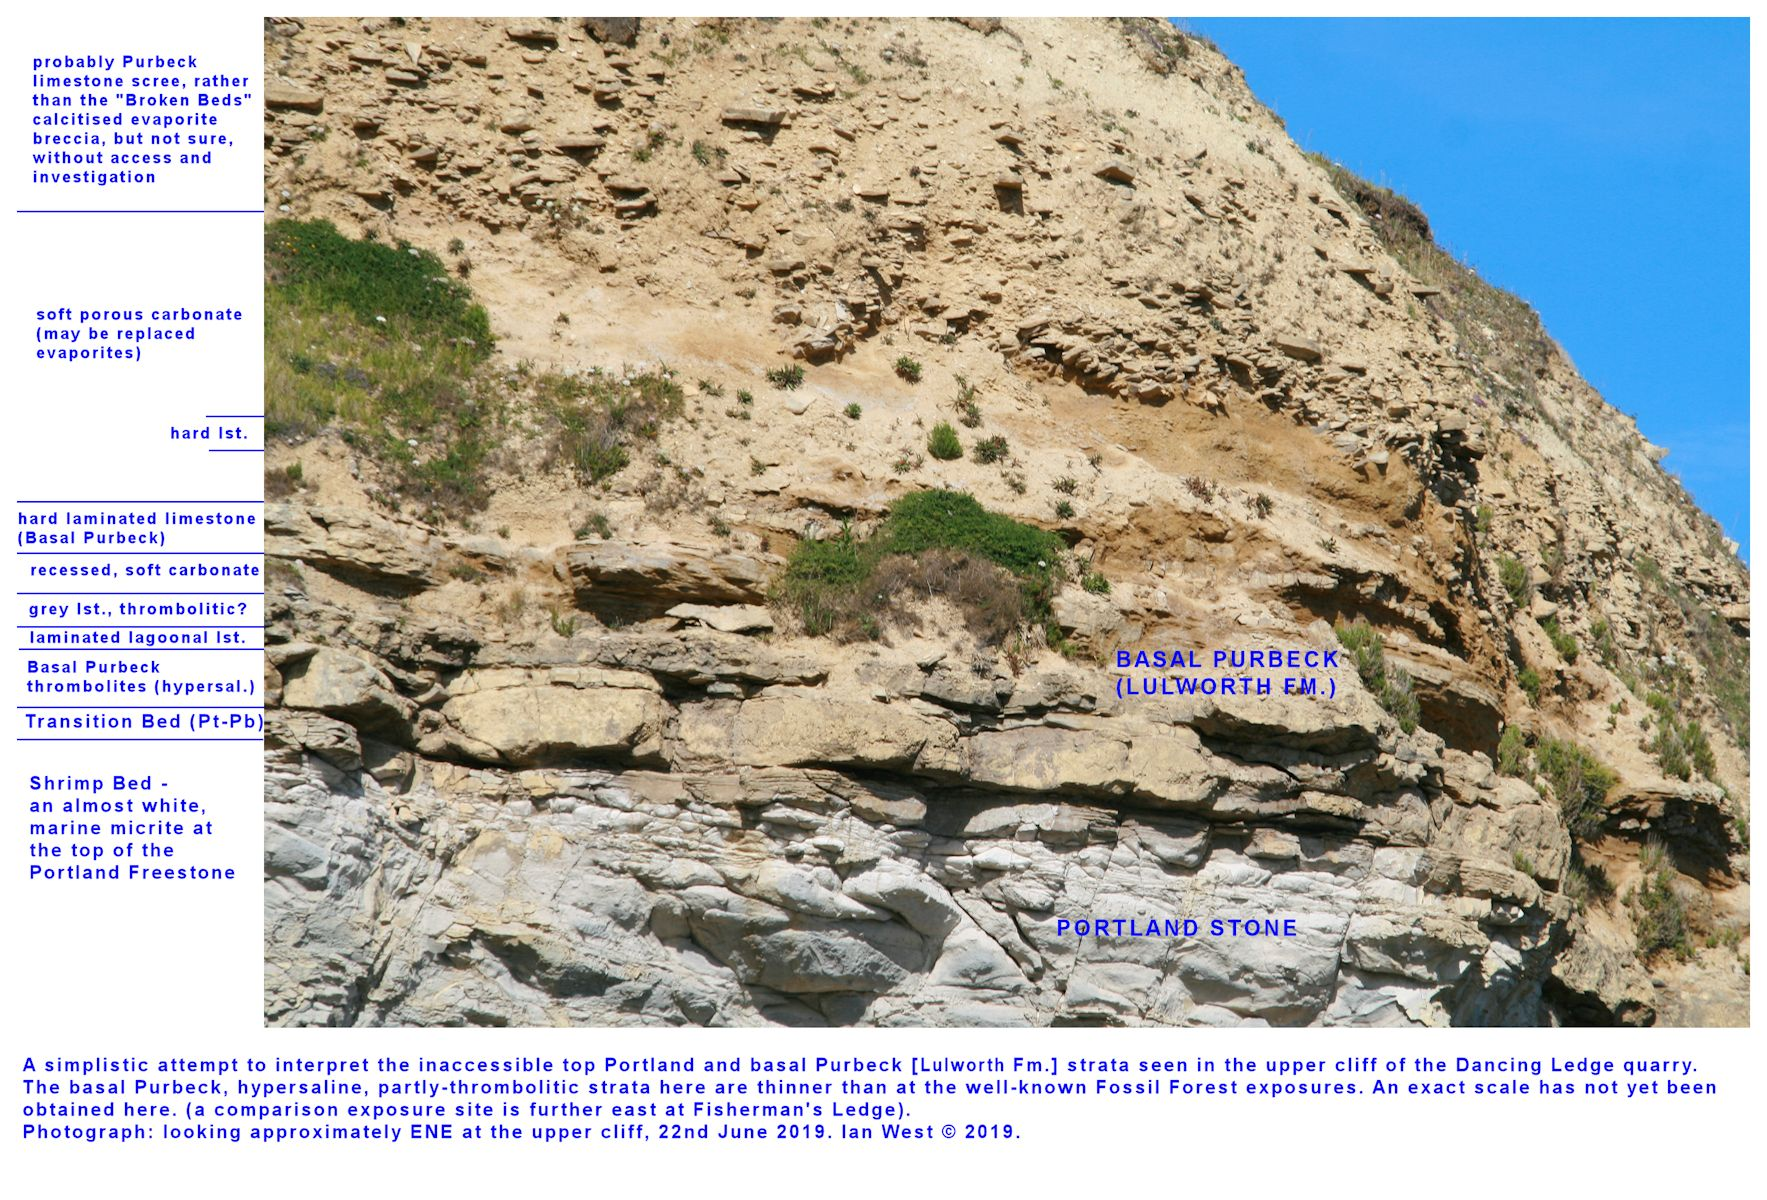 Some details of the Purbeck-Portland transition at Dancing Ledge, in an inaccessible location high in the cliff and thus with no thickness information, 22nd June 2019